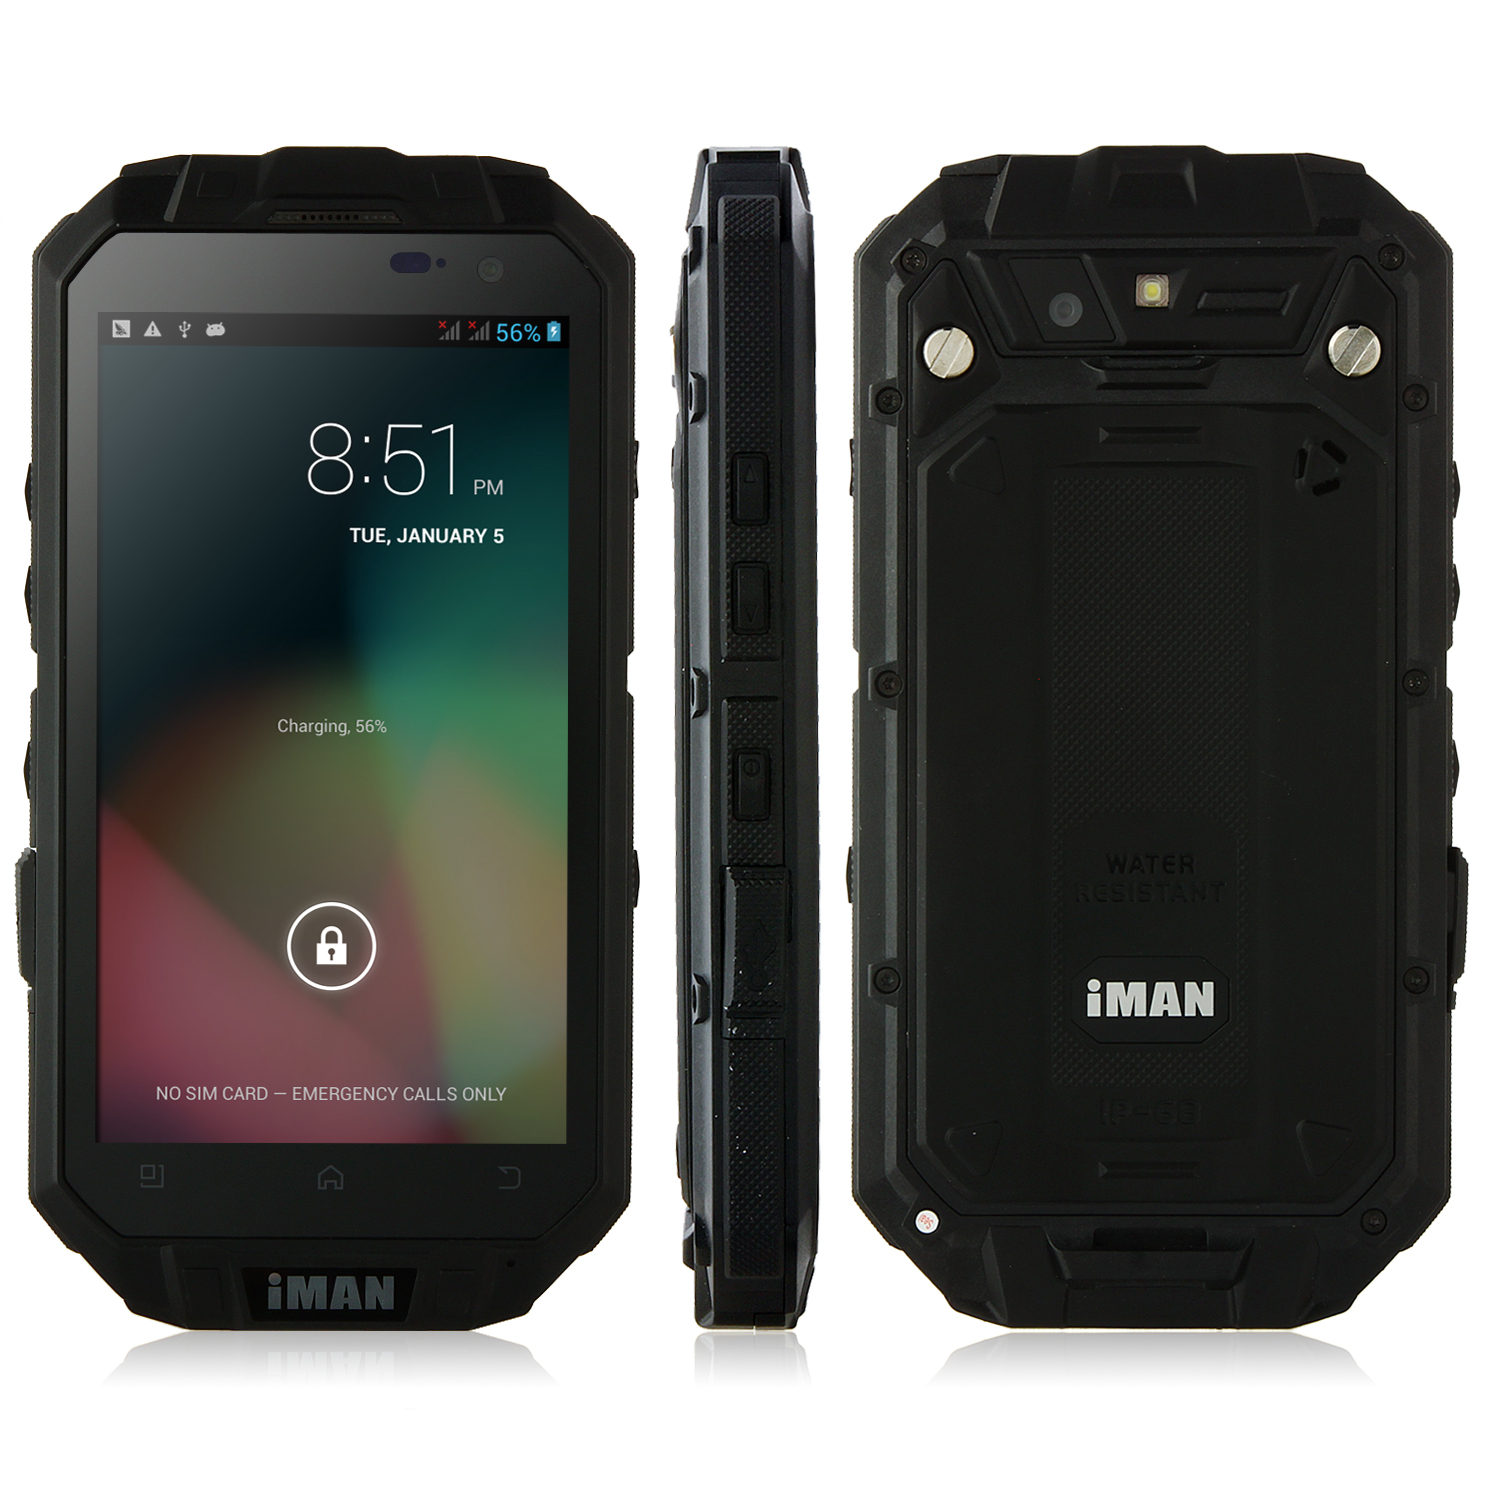 iMAN i3 Smartphone IP68 Android 4.2 MTK6589T 1GB 16GB 4.3 Inch QHD IPS Screen Black